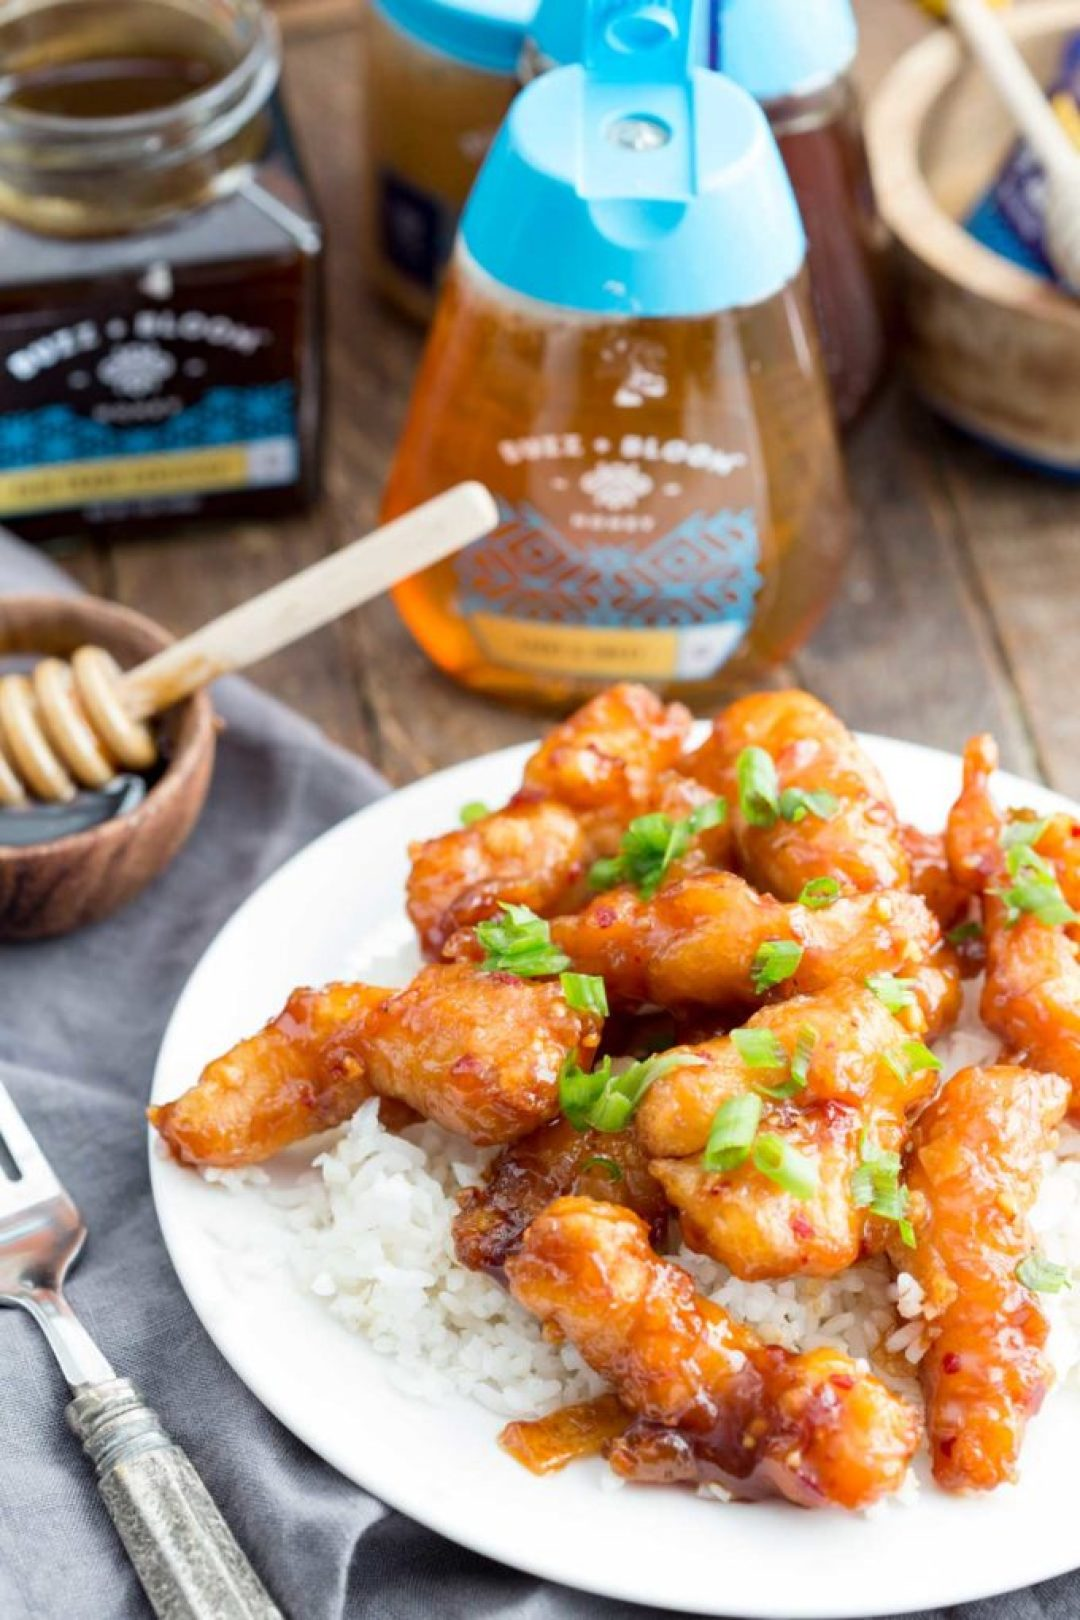 Honey Garlic chicken, a sweet, flavorful meal the whole family will love